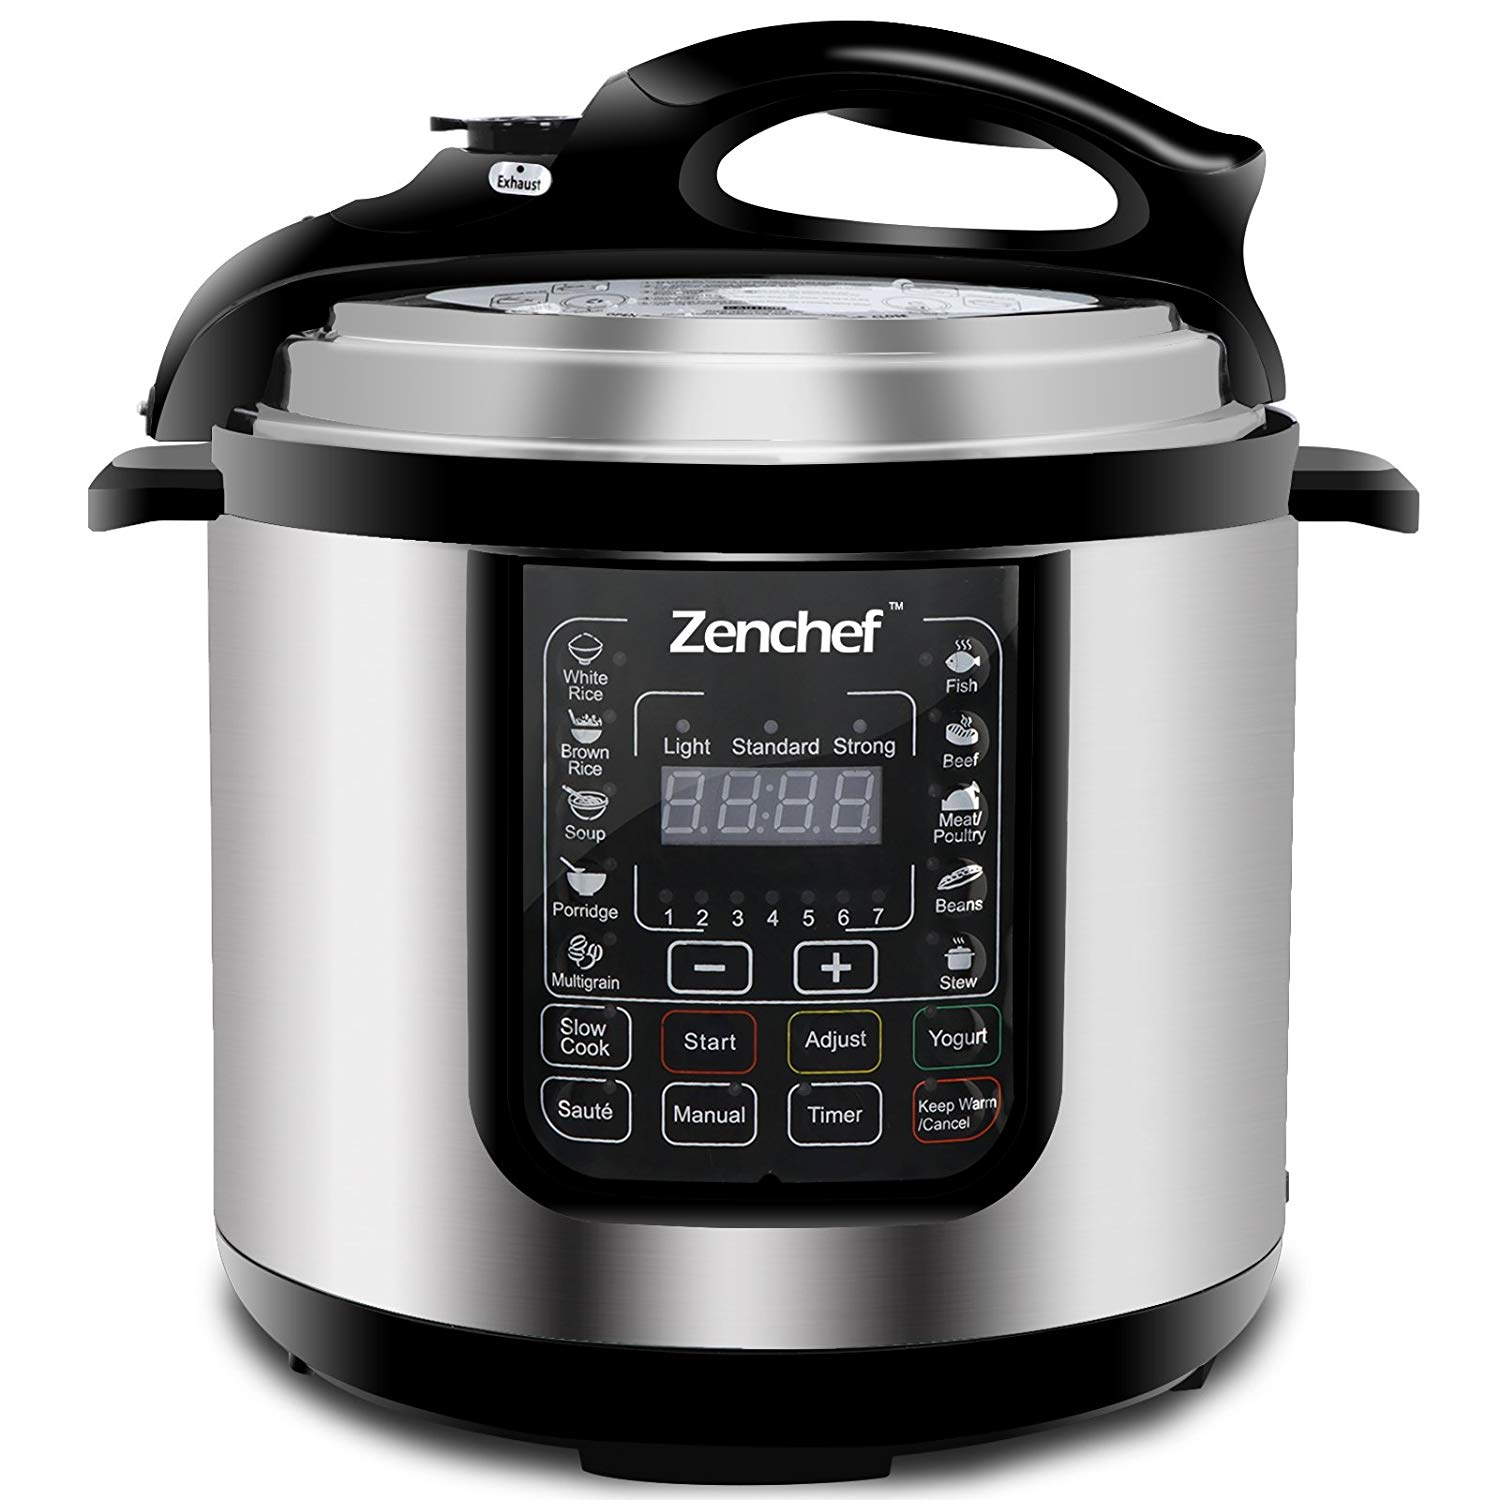 SUPER DEAL 6 Qt 14-in-1 Multi-Use Programmable Pressure Cooker Stainless Steel Electric Pressure Cooker 1000W w/LED Display Screen, Rice Cooker, Sauté, Steamer, Slow Cooker, Yogurt Maker & Food Warmer